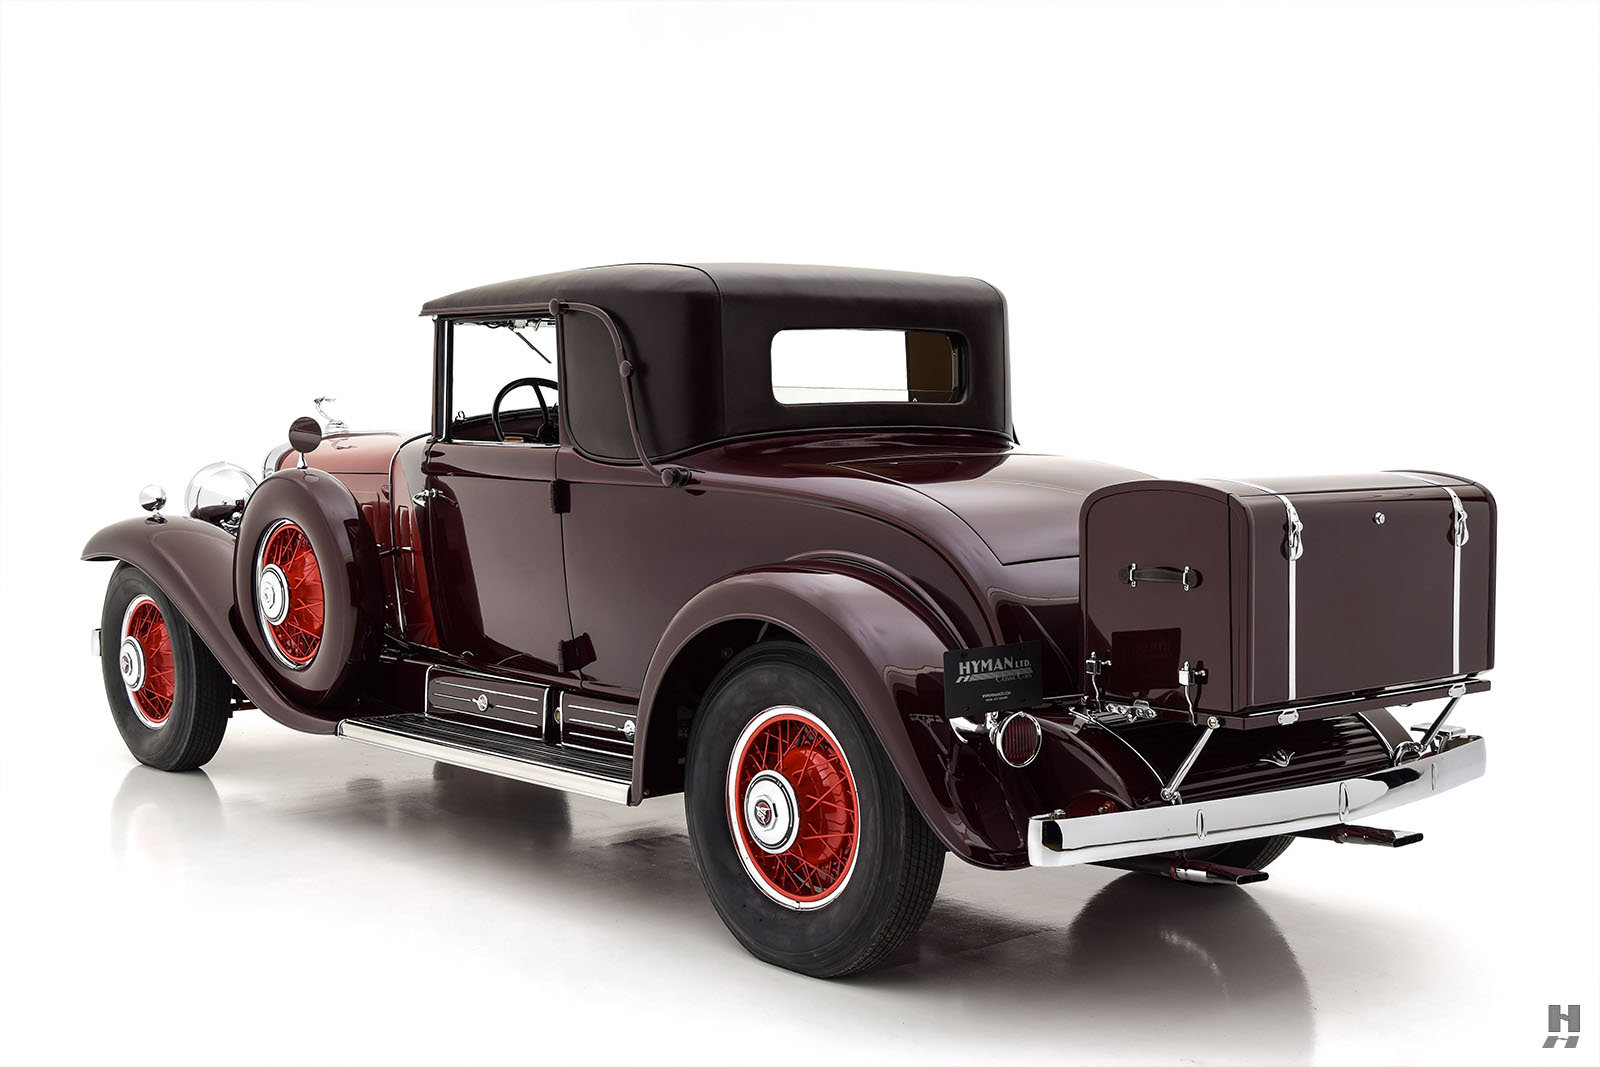 1930 CADILLAC SERIES 452 V-16 COUPE For Sale (picture 6 of 6)